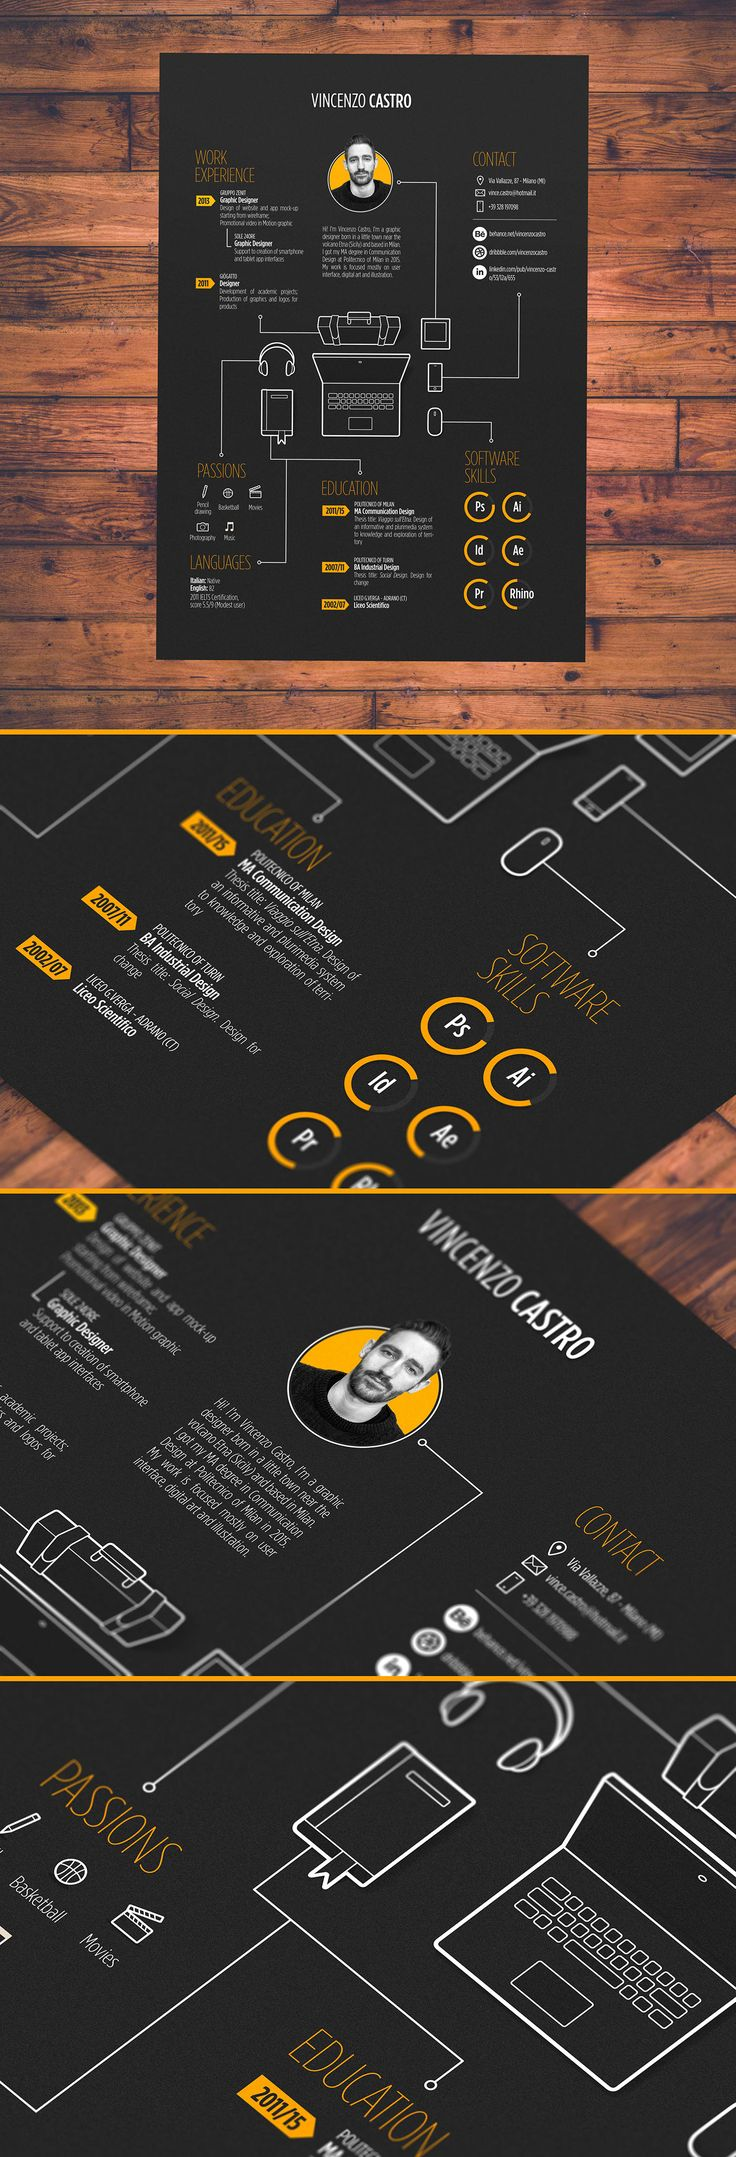 53 best Buncha CV images on Pinterest | Resume design, Cv template ...